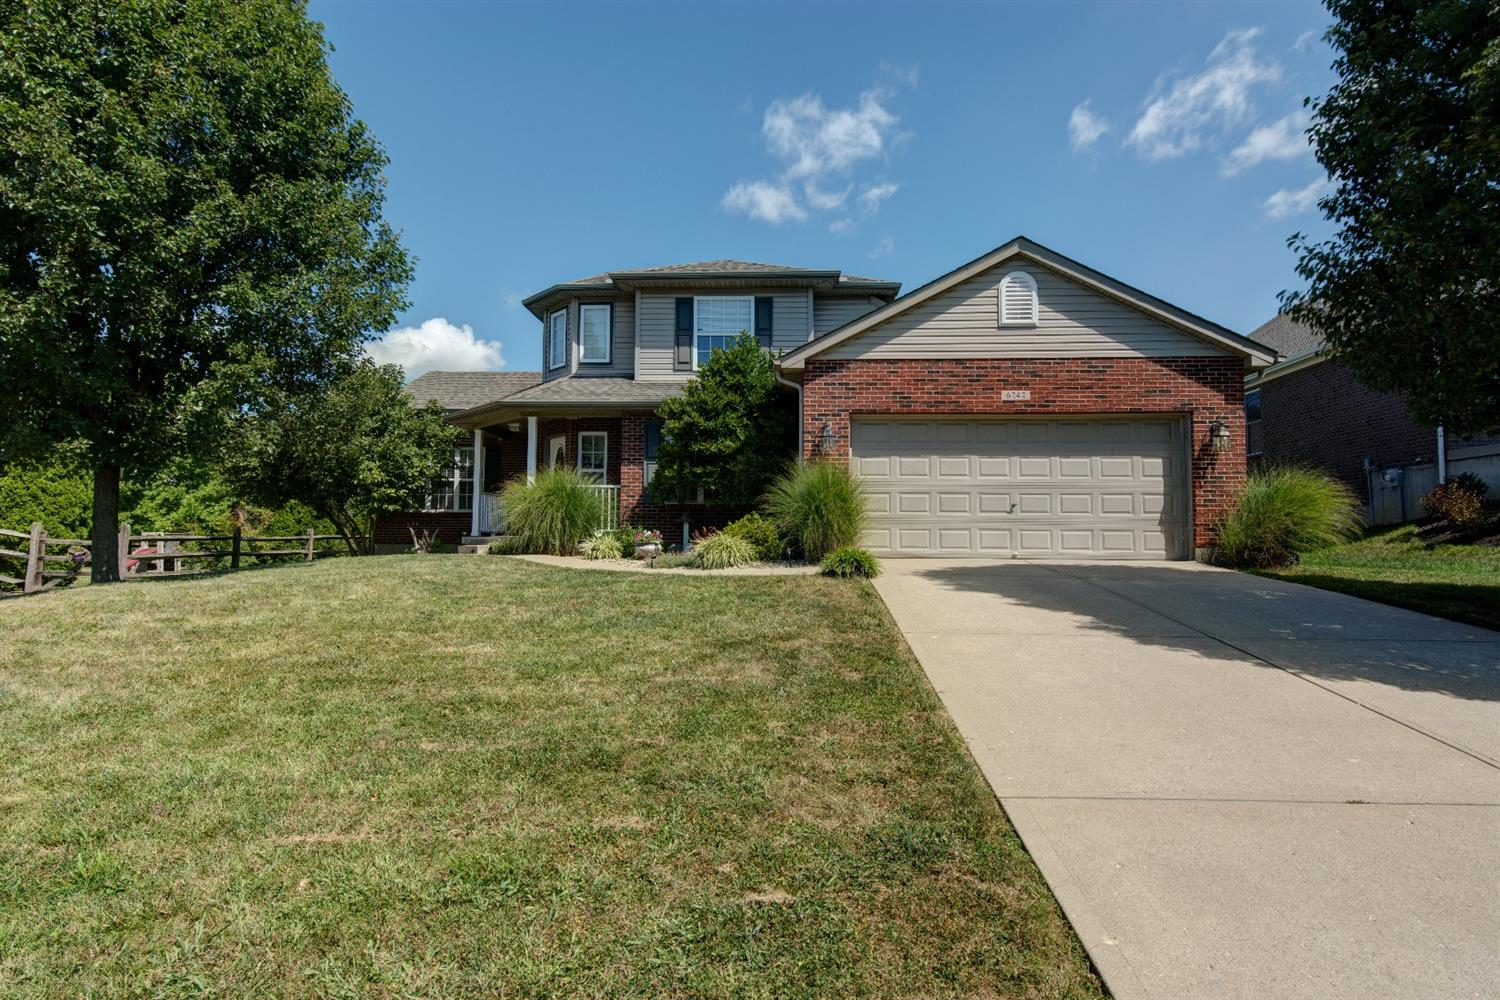 6242 Green Knoll Cir Fairfield Twp., OH